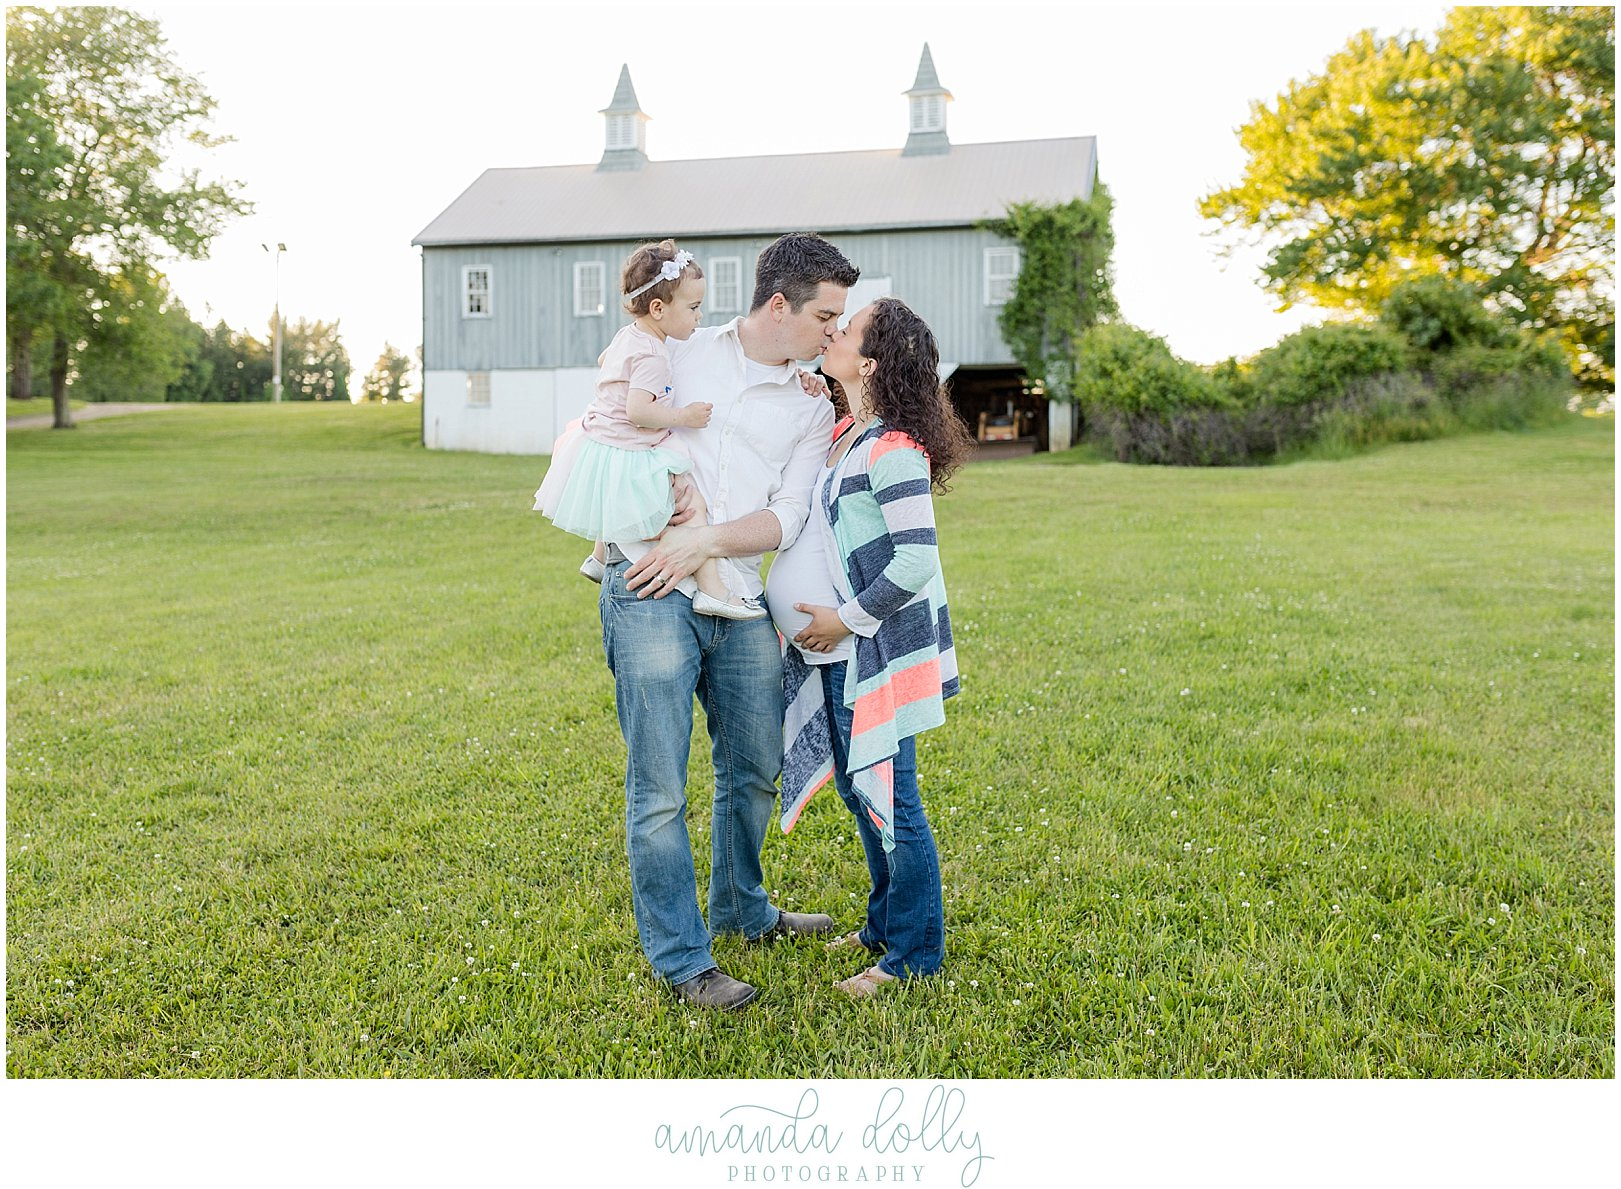 Bayonet Farm Family Photography